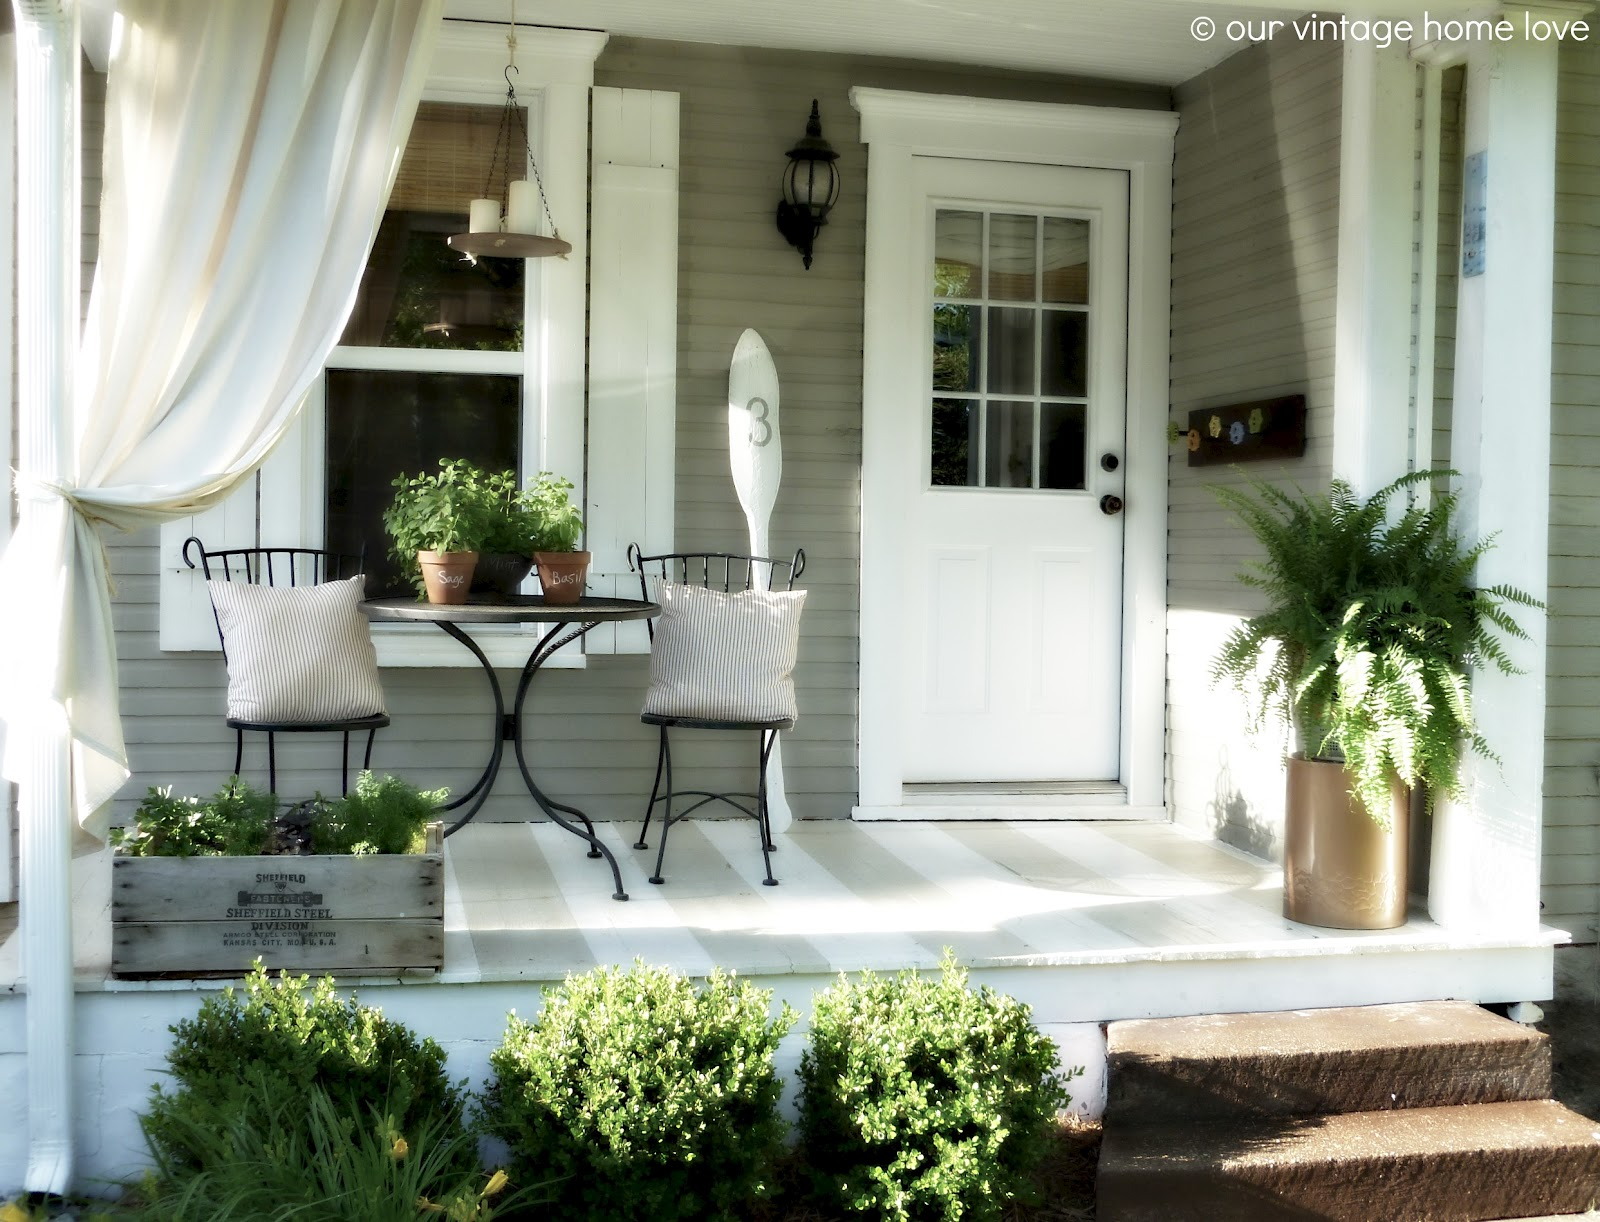 Our vintage home love back side porch ideas for summer - Decorating a small deck ideas ...